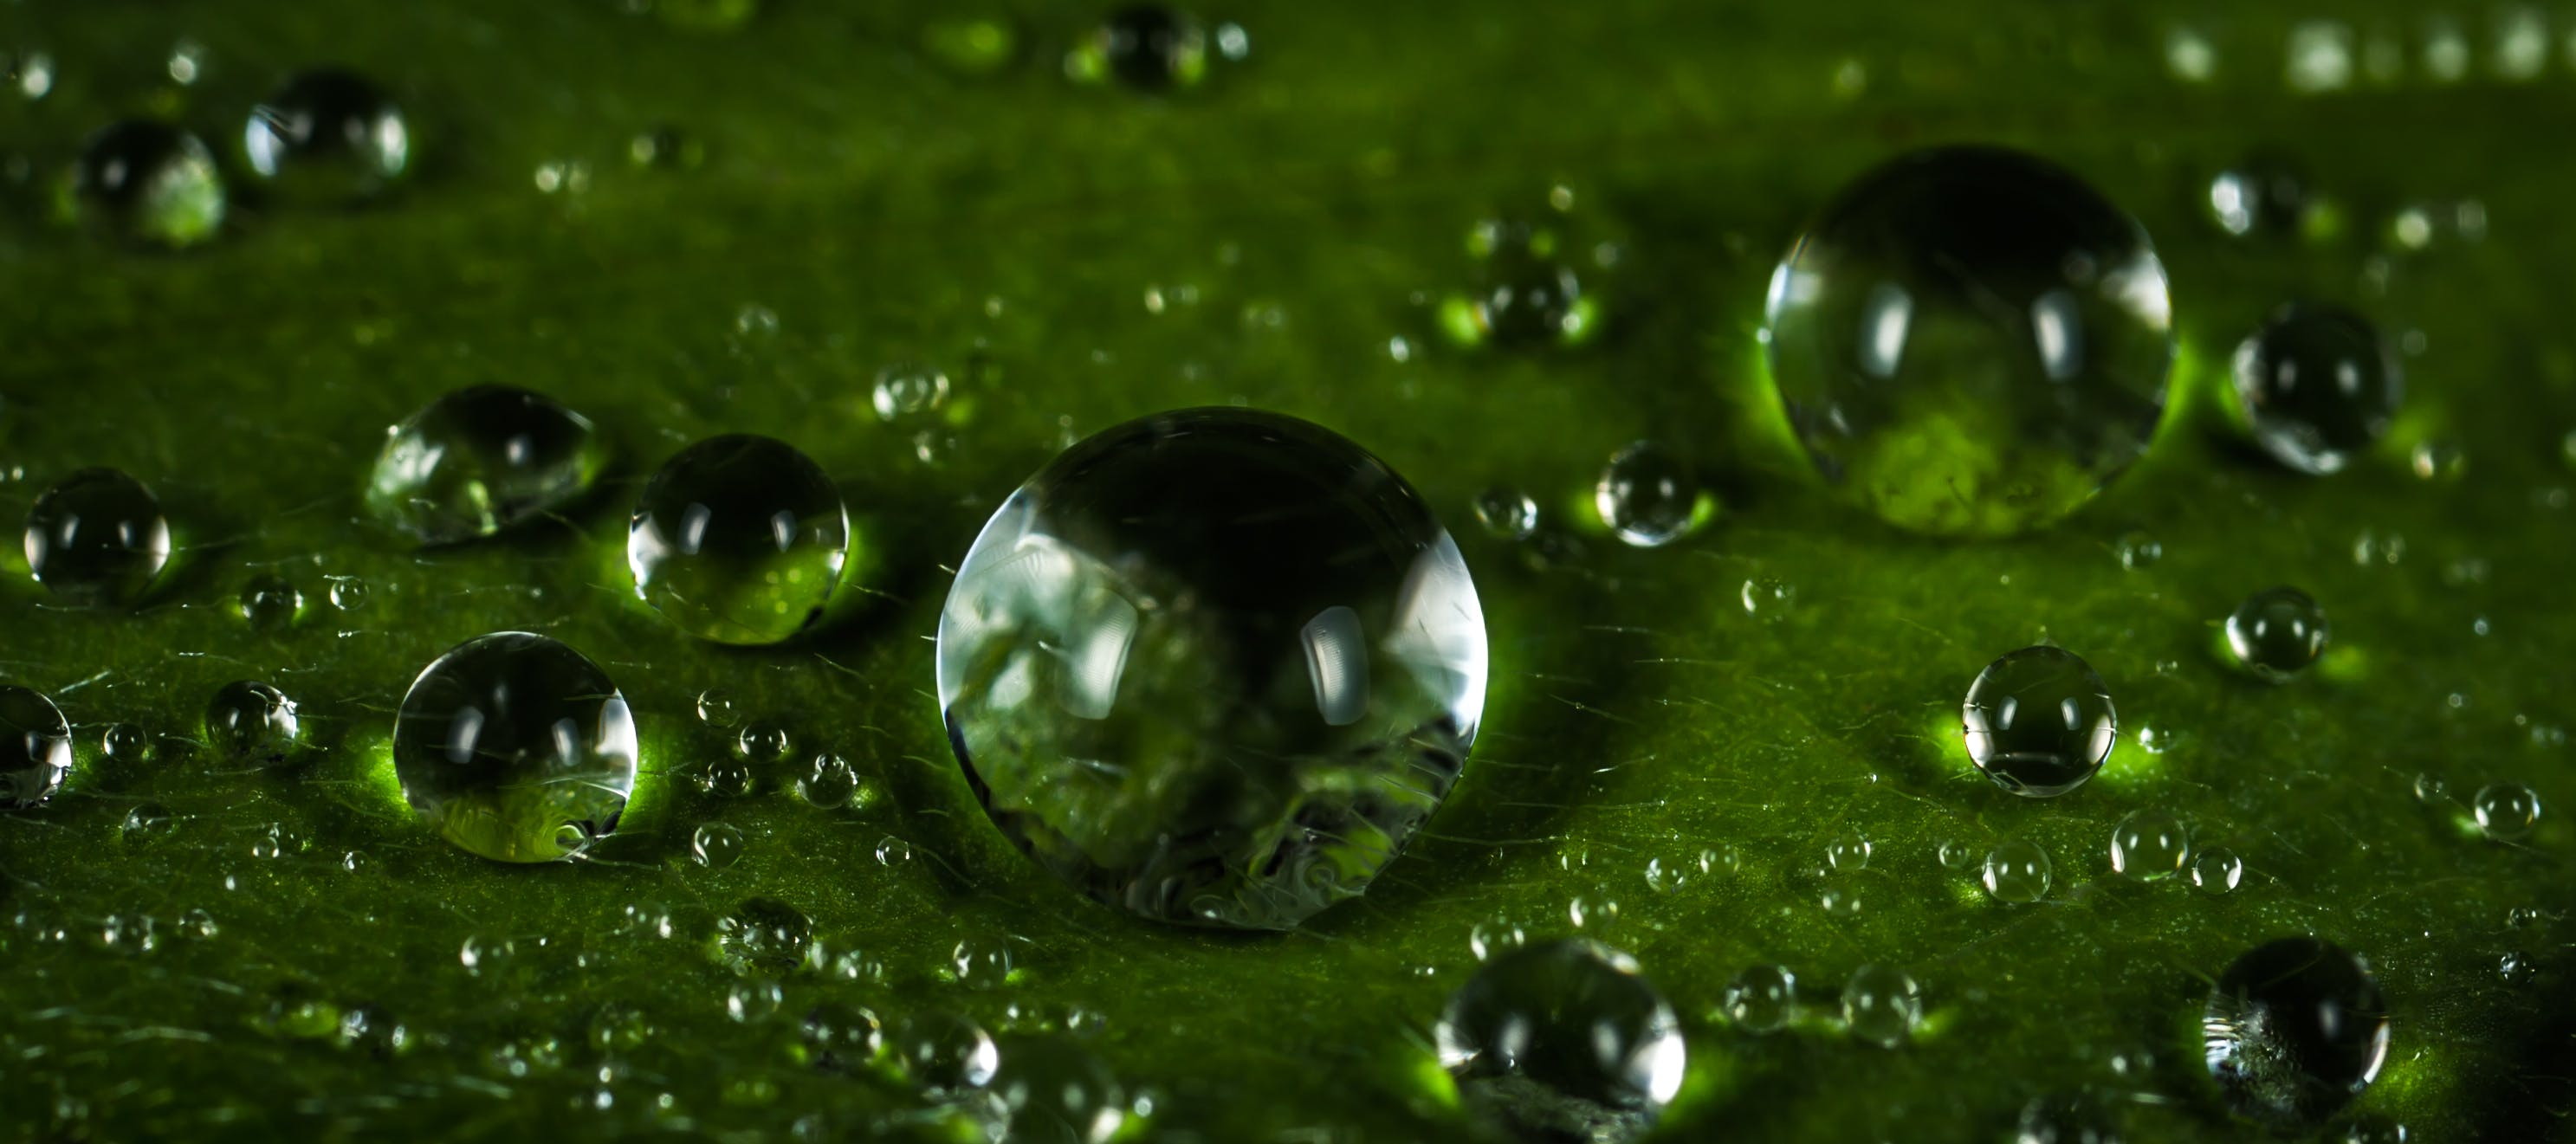 Macro Photography of Waterdrops